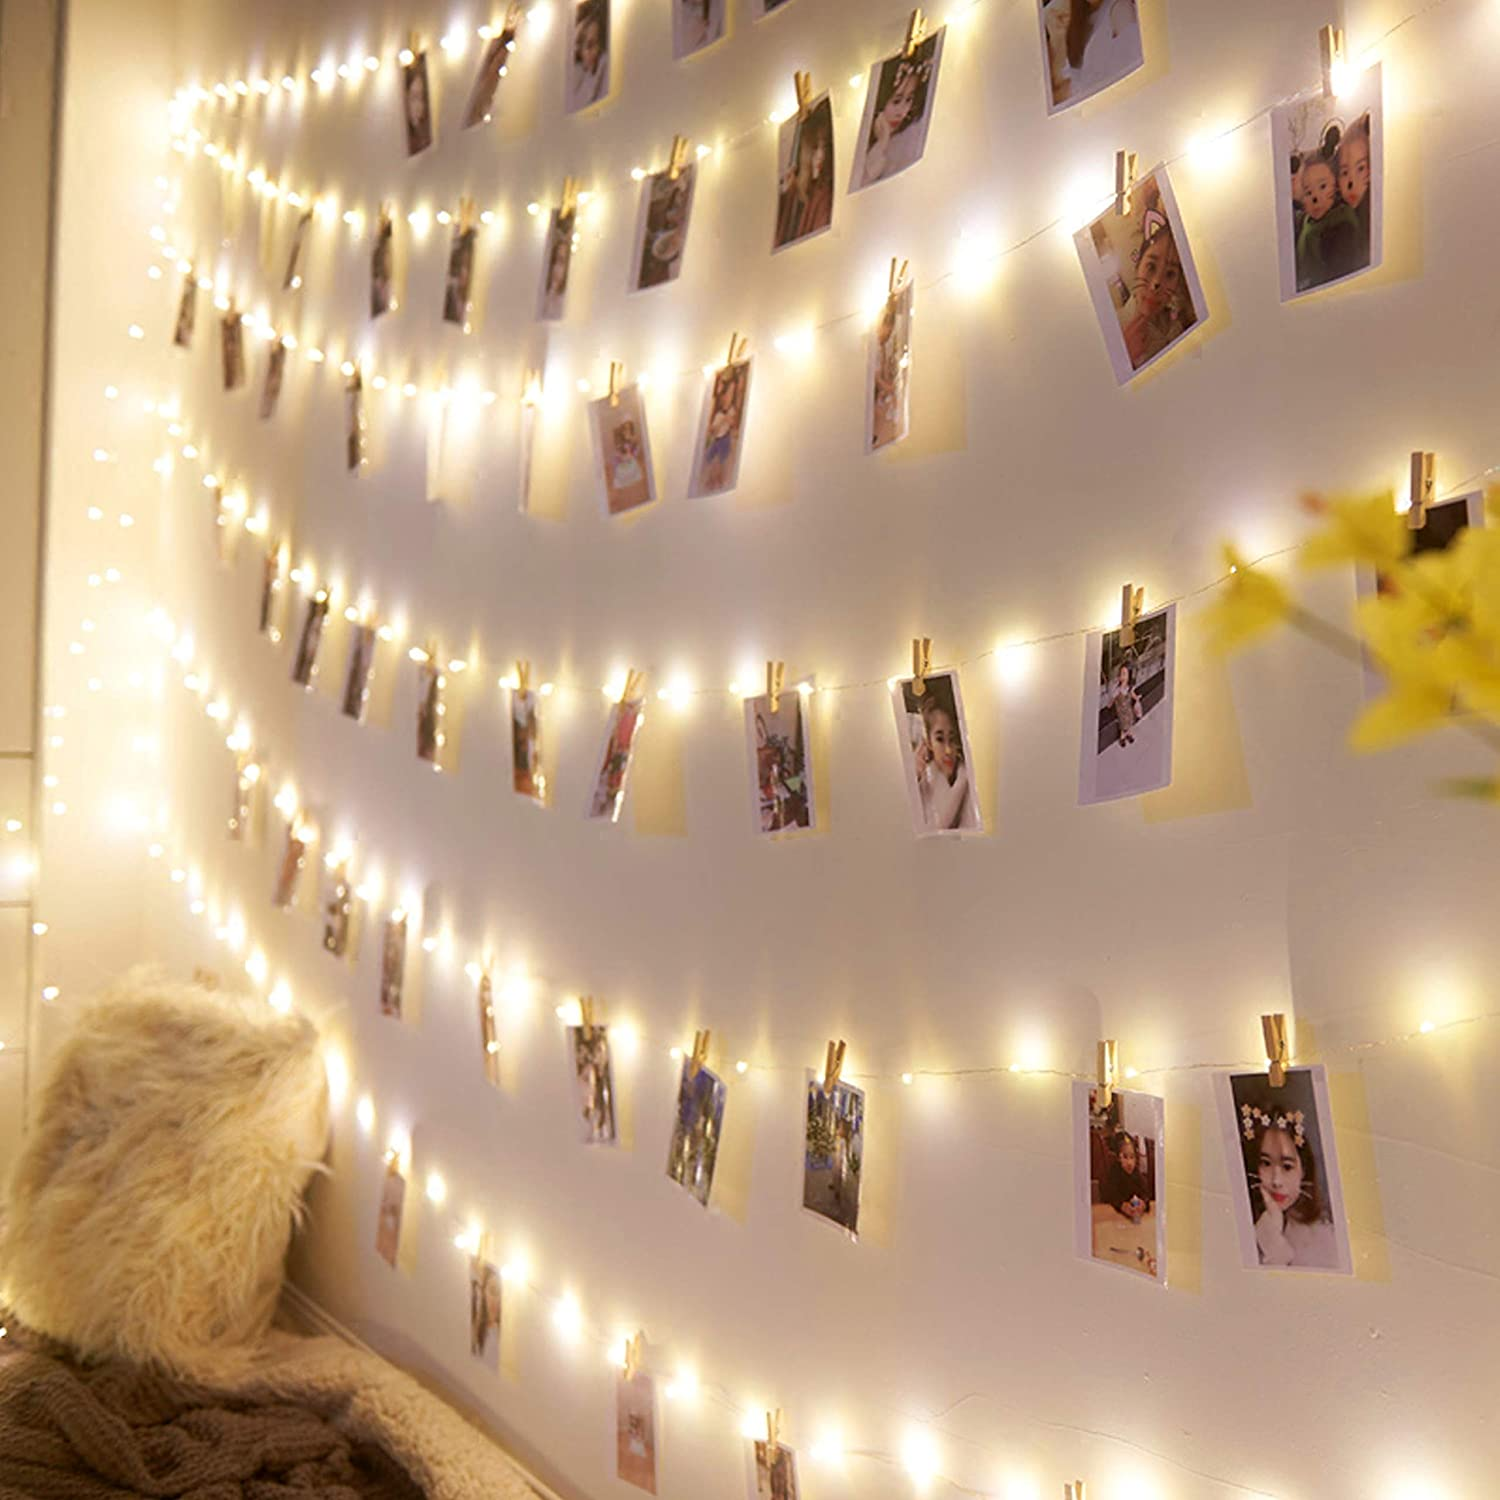 8 Modes Battery Powered Warm White Decor Lights for Bedroom Christmas Wedding Party Decorman Photo Clips String Light 33FT 100LED Waterproof Fairy String Lights with 100 Wooden Clips